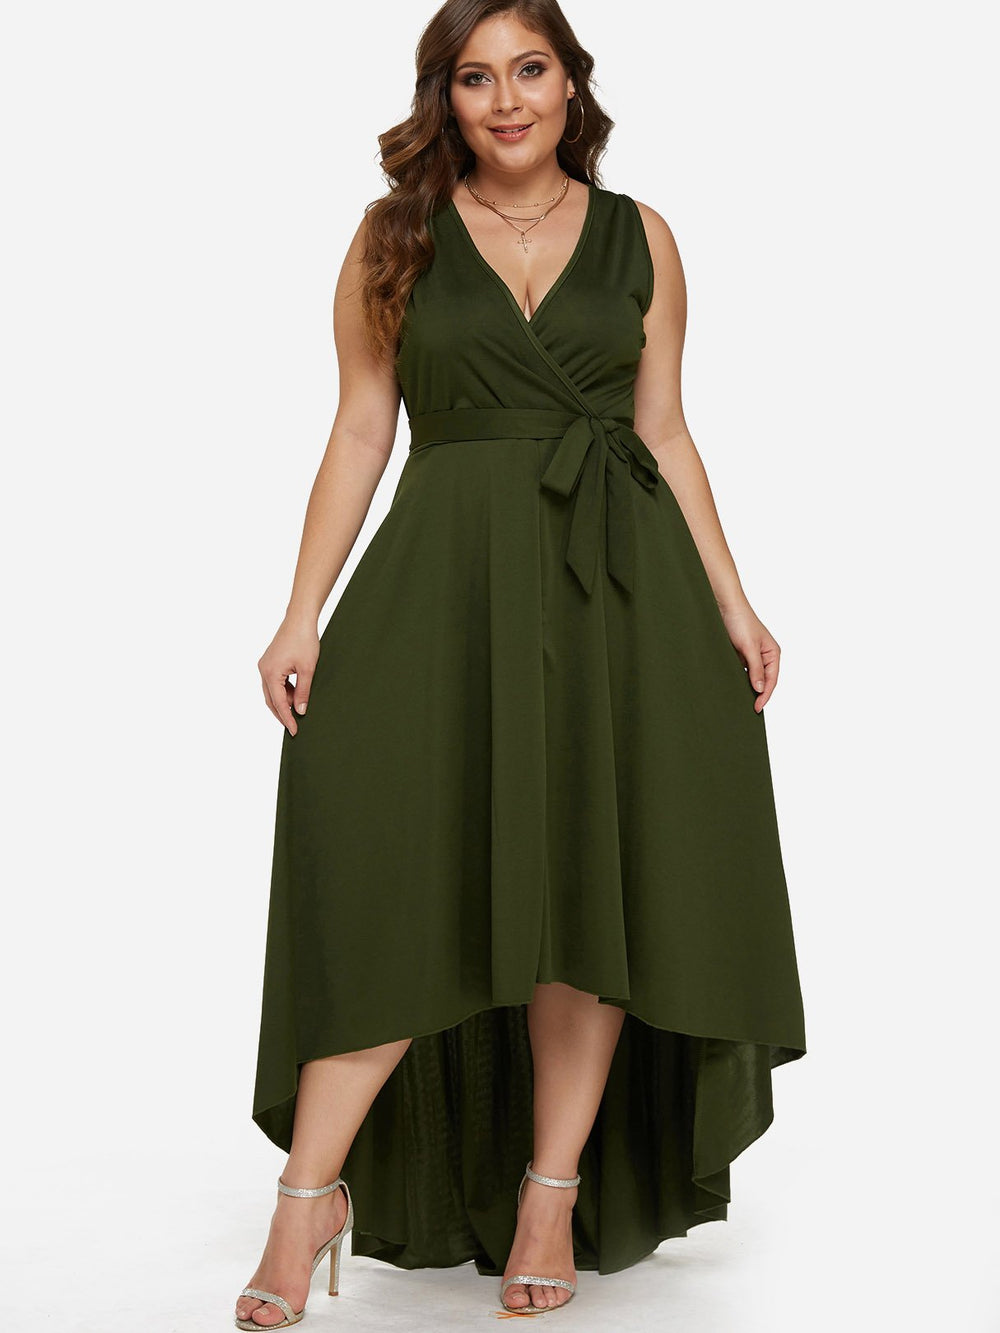 Womens Sleeveless Plus Size Dresses